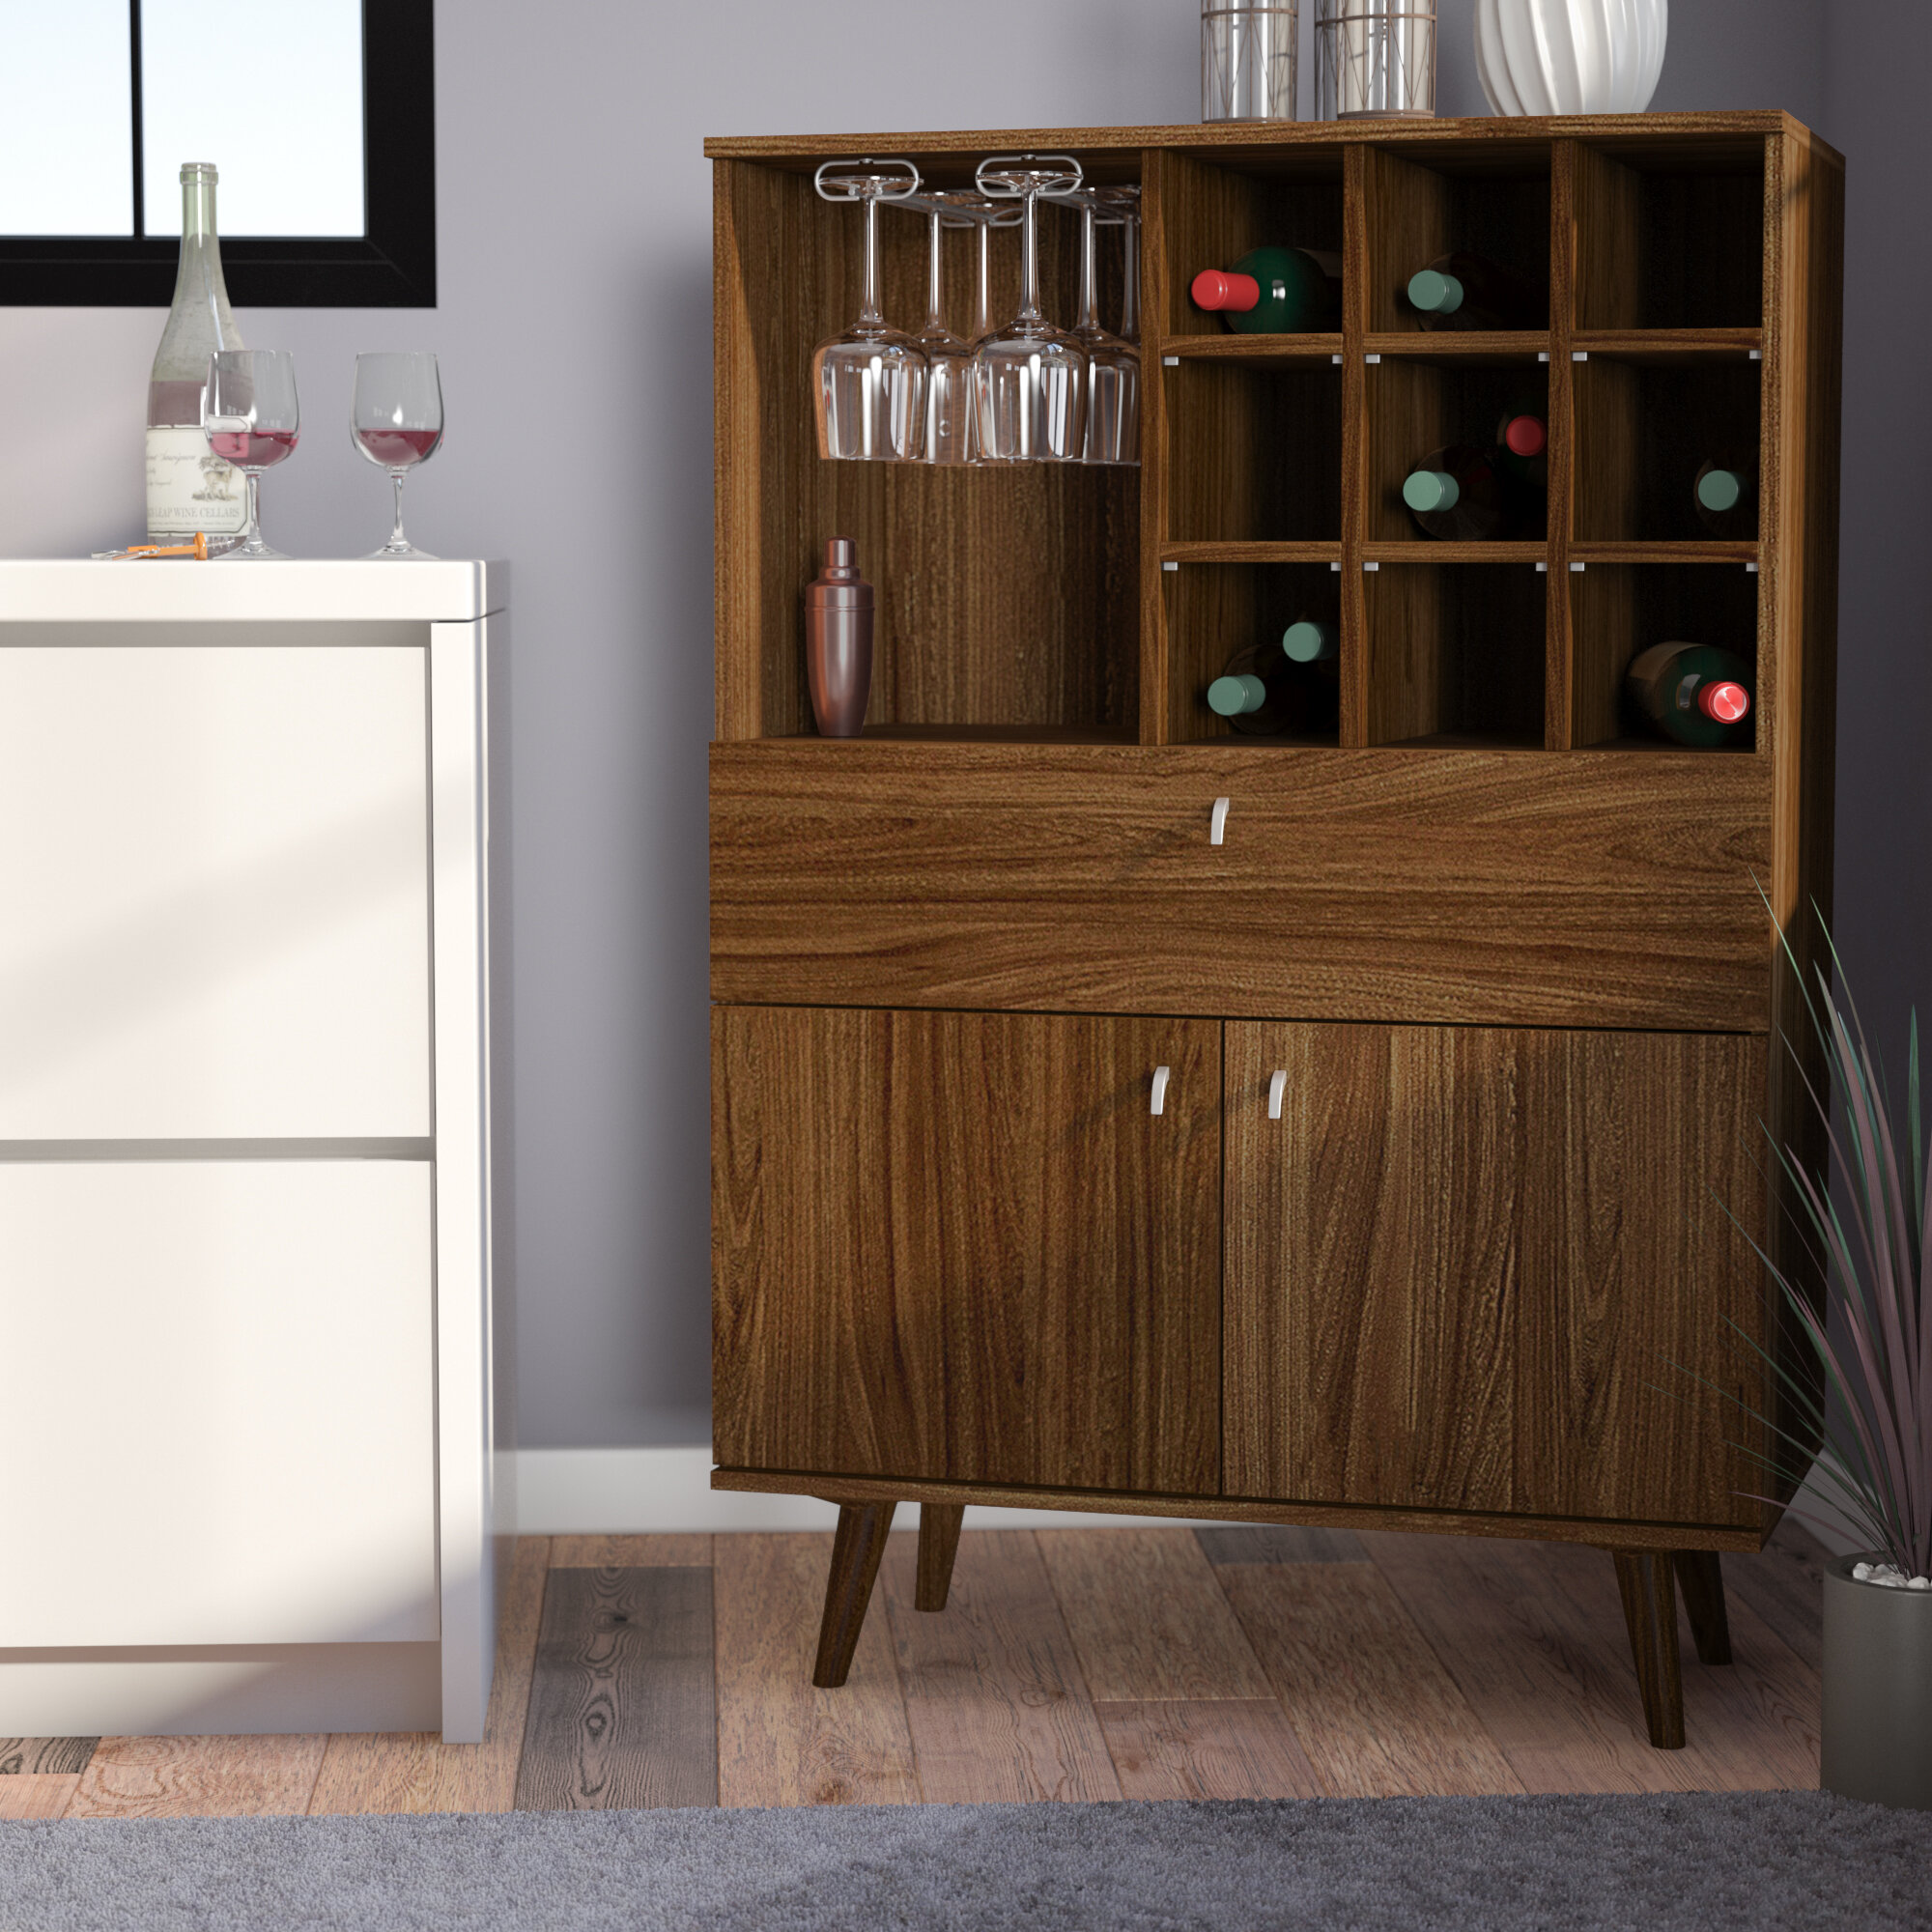 Swell Gianna Bar Cabinet Lamtechconsult Wood Chair Design Ideas Lamtechconsultcom